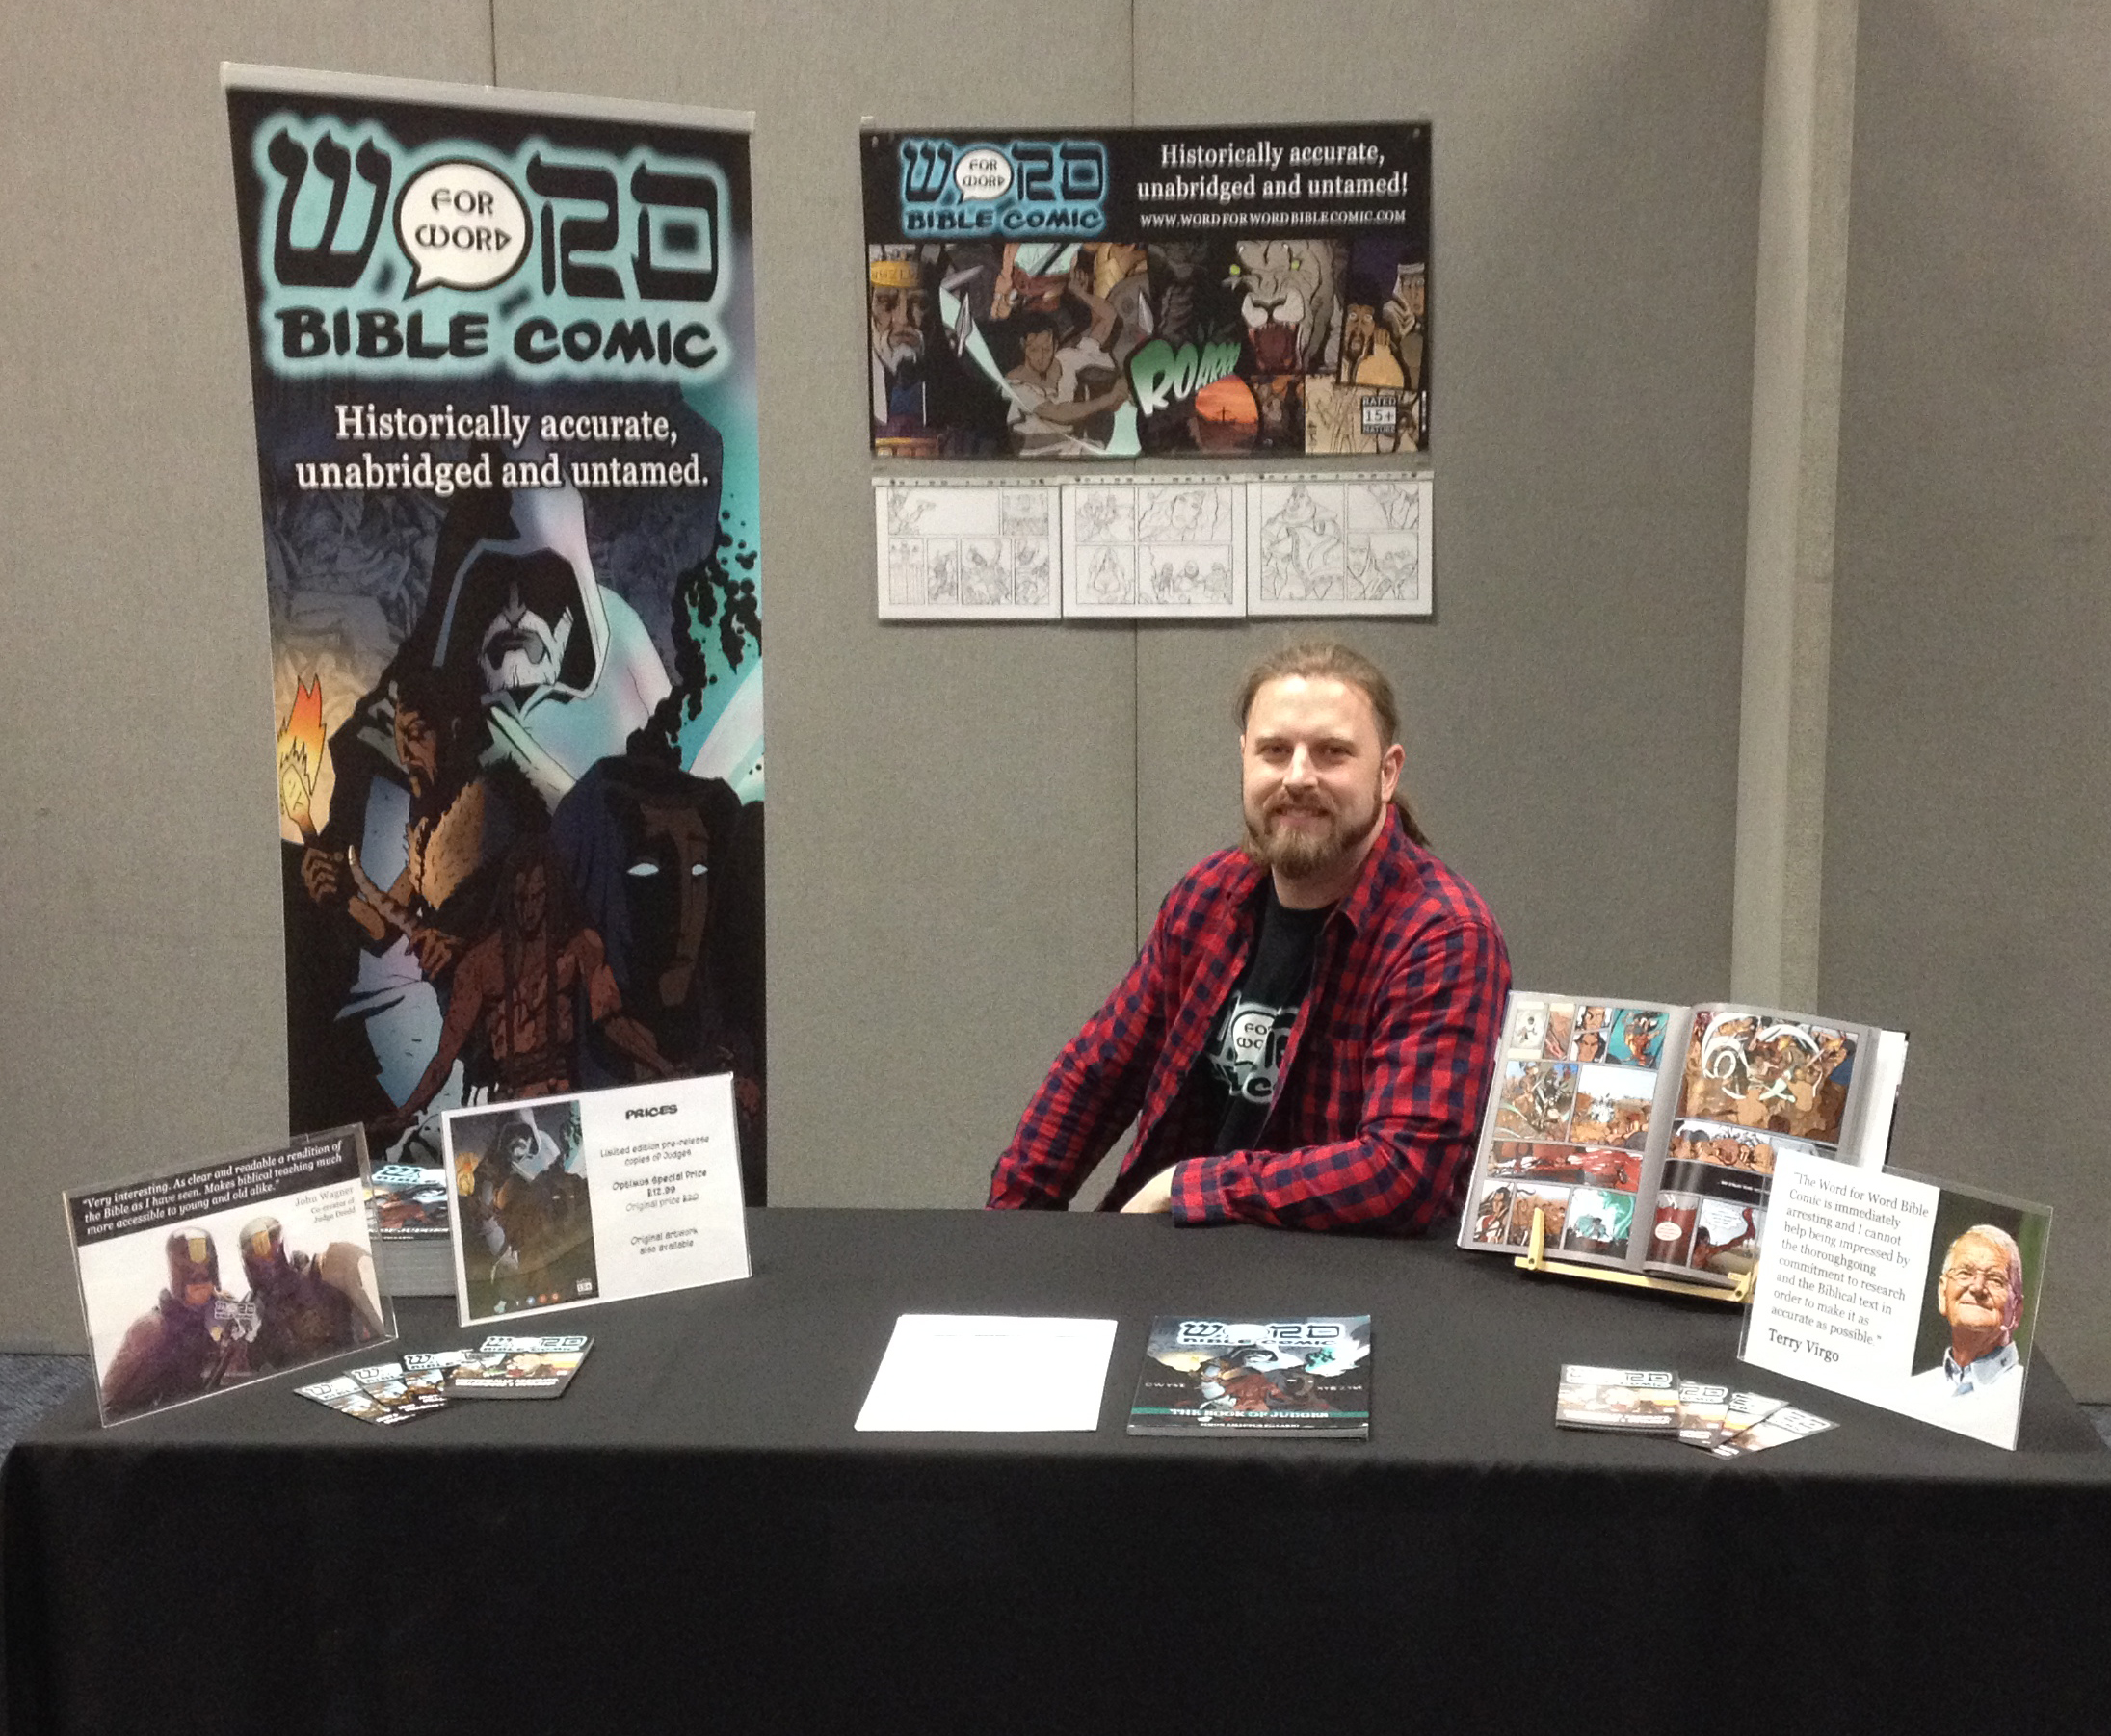 Word for word bible comic stand